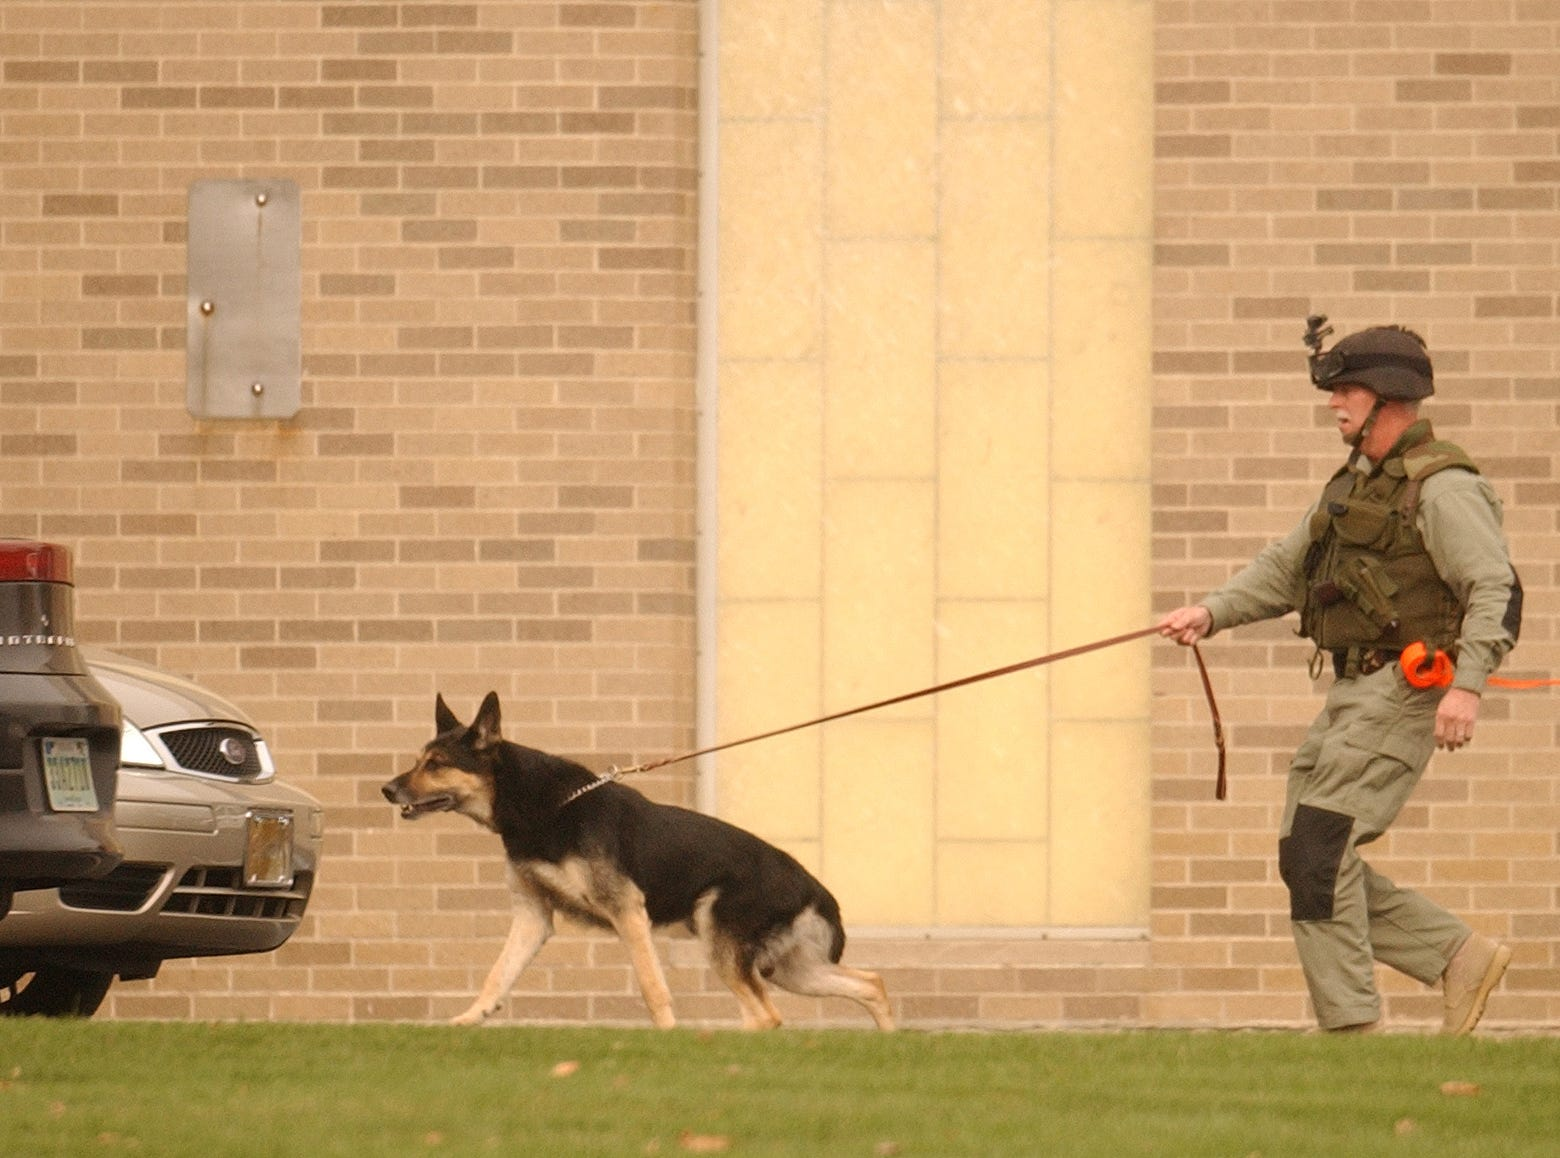 FROM 2007: Delaware County Sheriff George Sheridan and his K-9 partner Heri arrive at  Northside Middle School after a bomb threat was received.